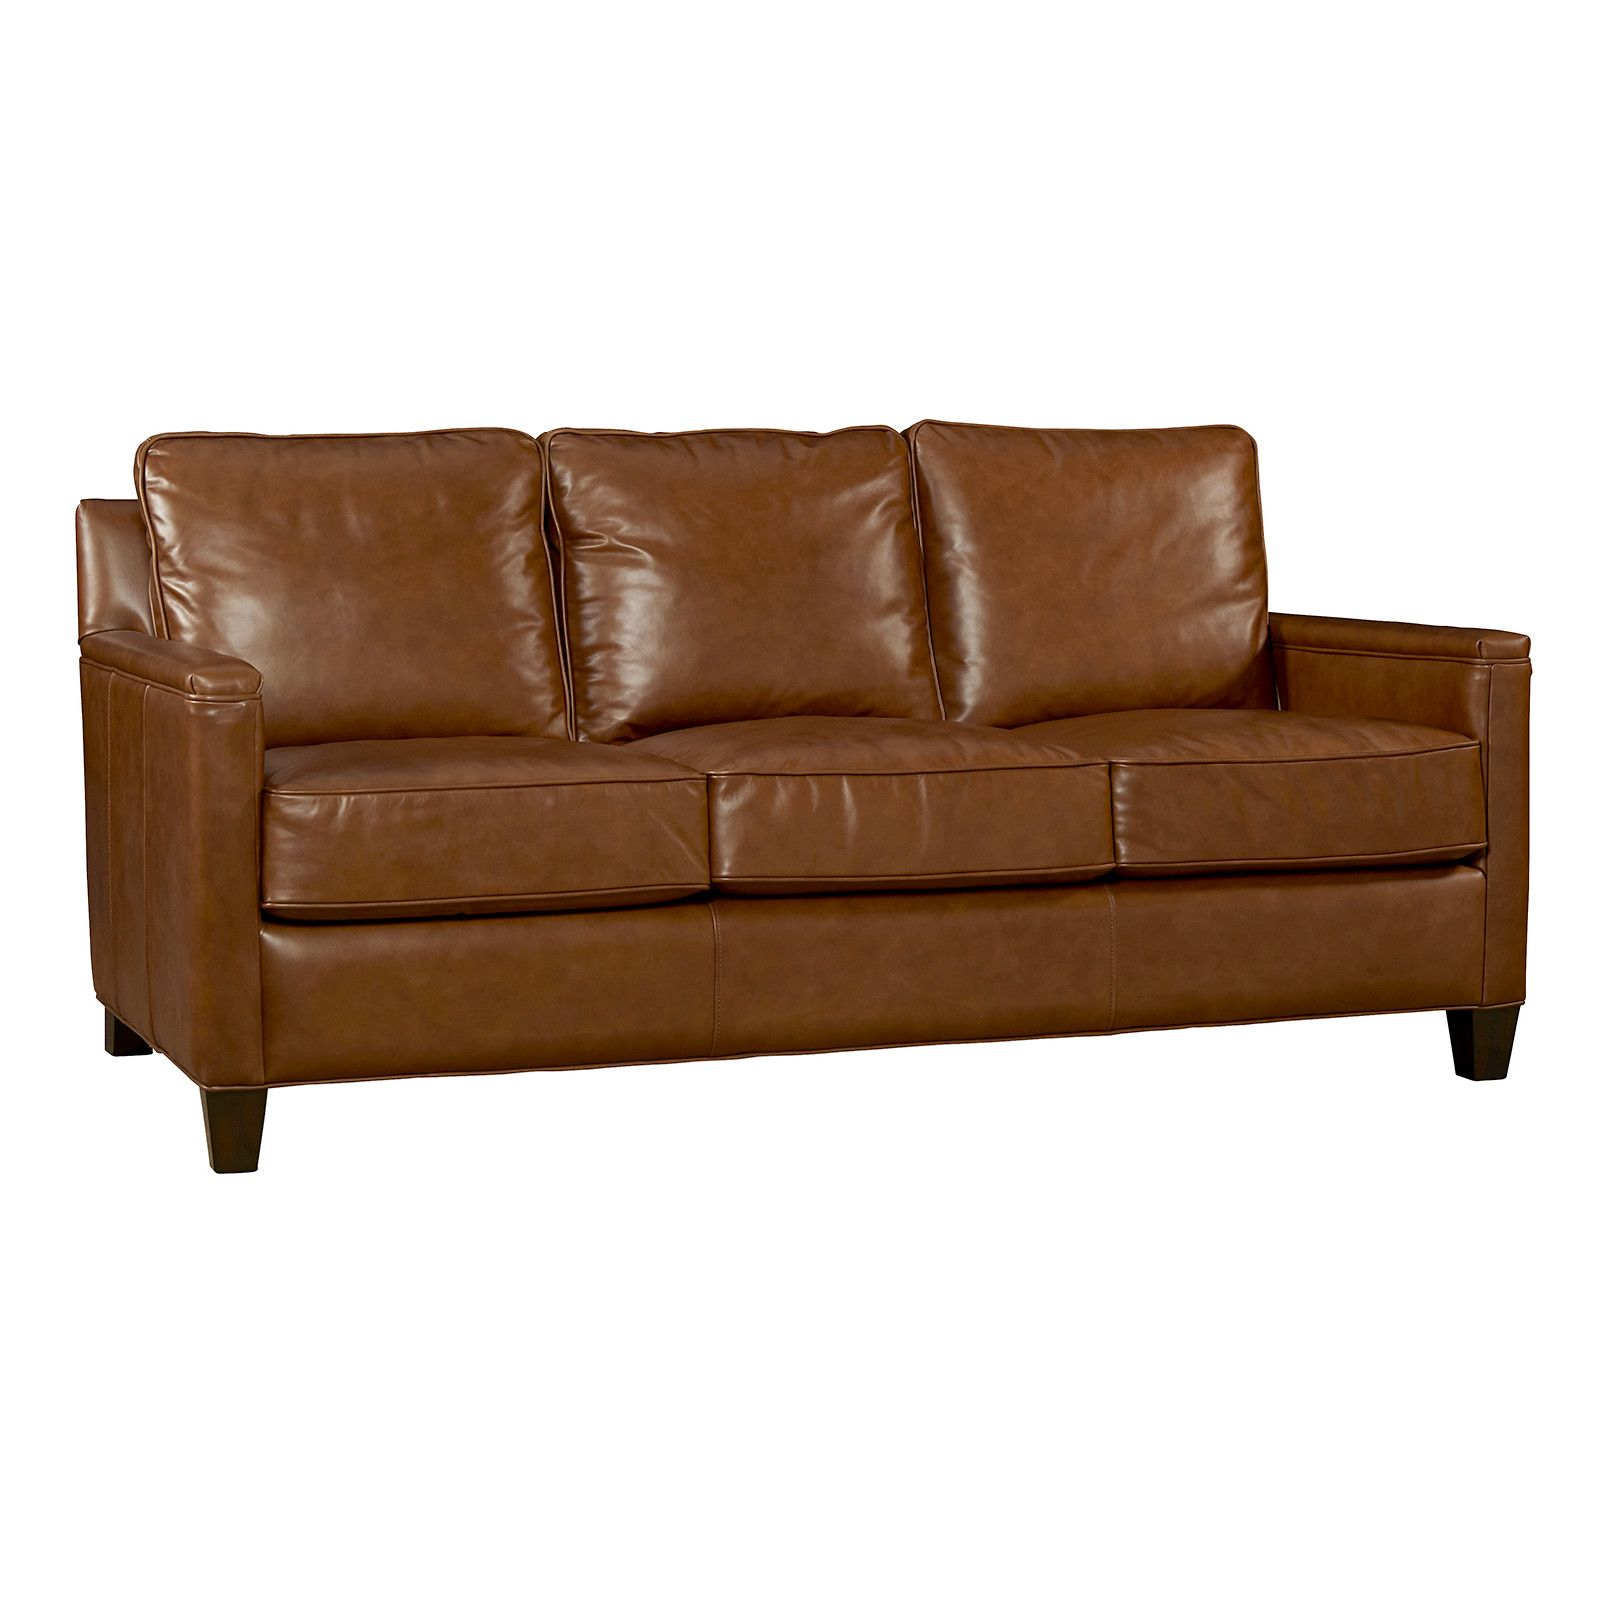 alec leather sofa collection reclining manufacturers alexander grampian furnishers hudson 4 seater